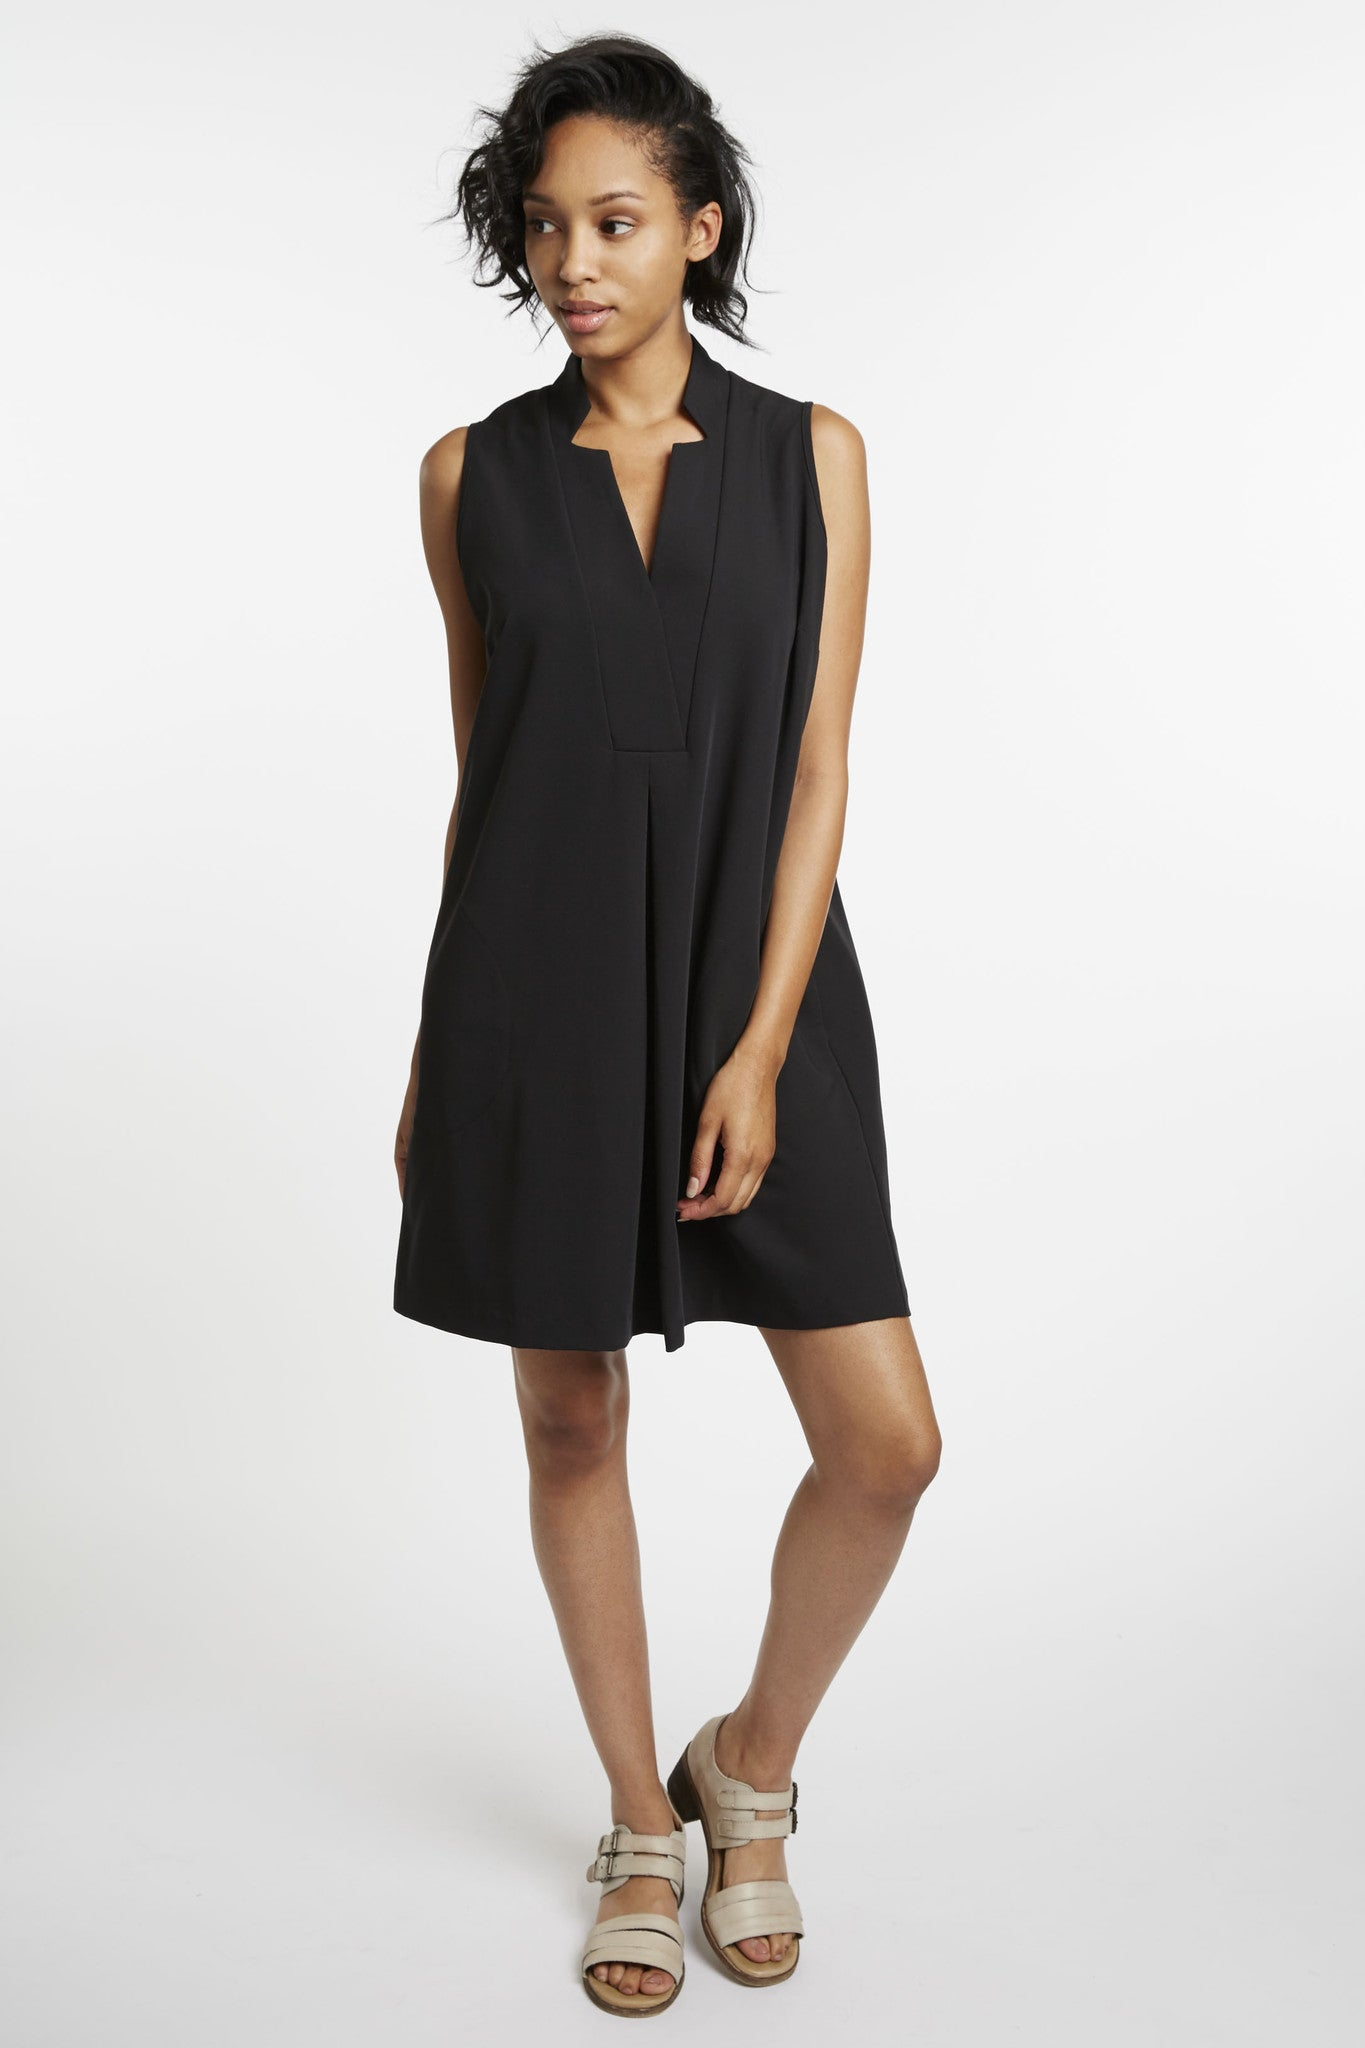 Copernicus Black Trapeze Dress by Karen Klein